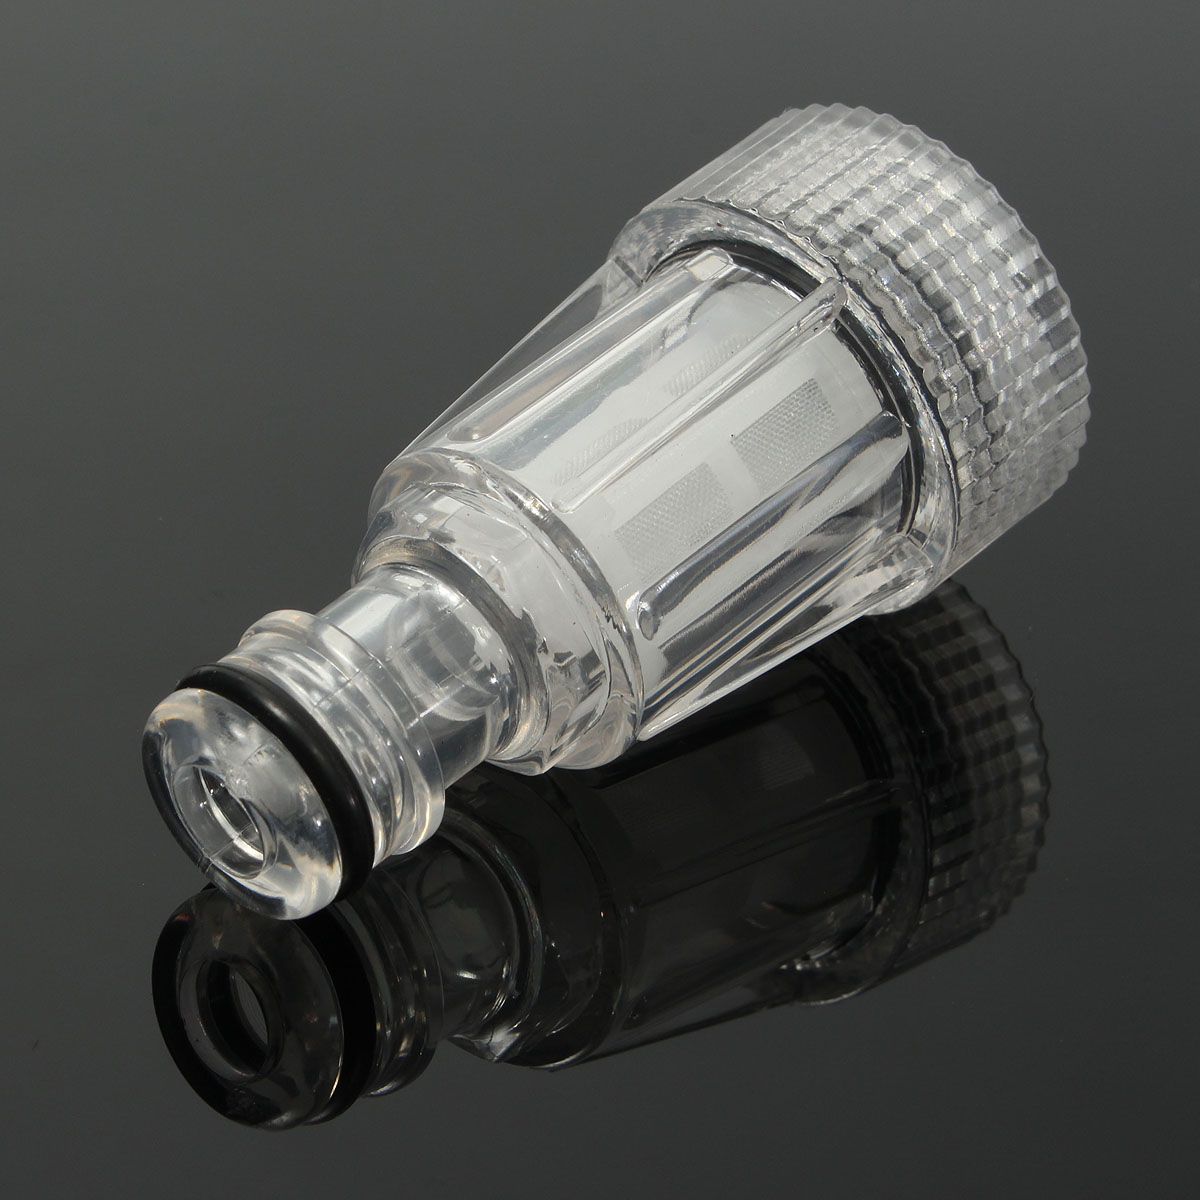 Car Washing Machine Water Filter High-pressure Connection Fitting For Karcher K2-K7 Series Pressure Washers